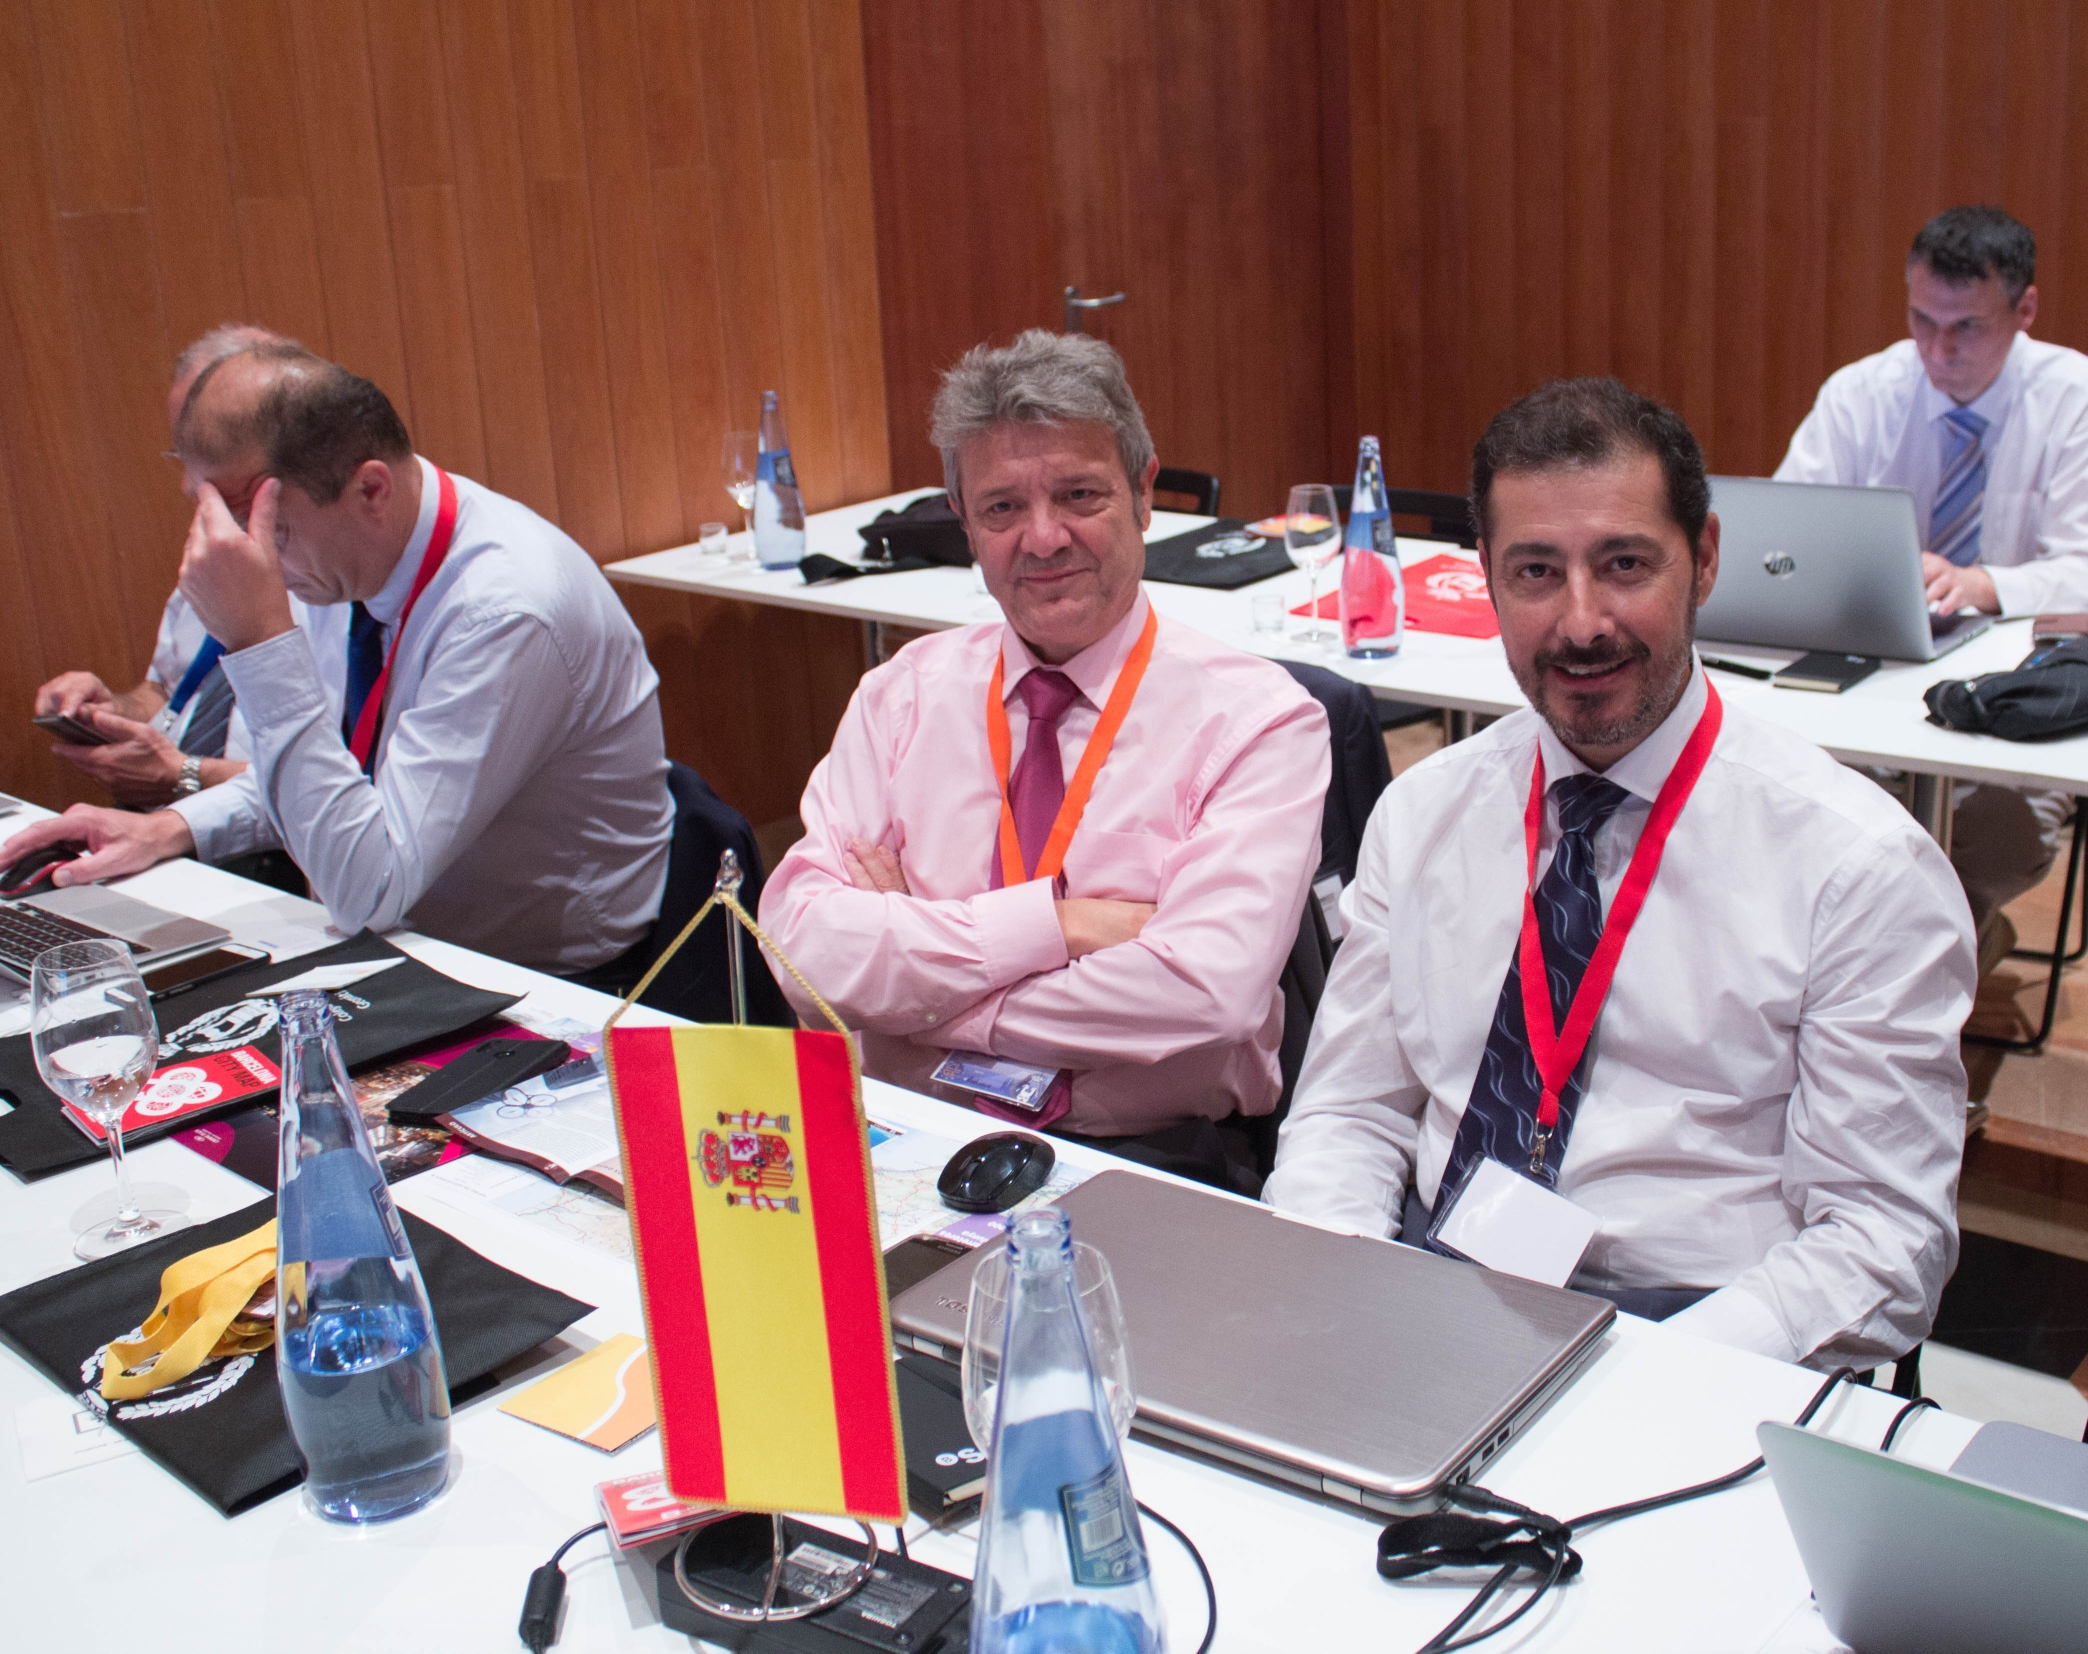 clge-general-assembly-barcelona-2018_44329718265_o.jpg